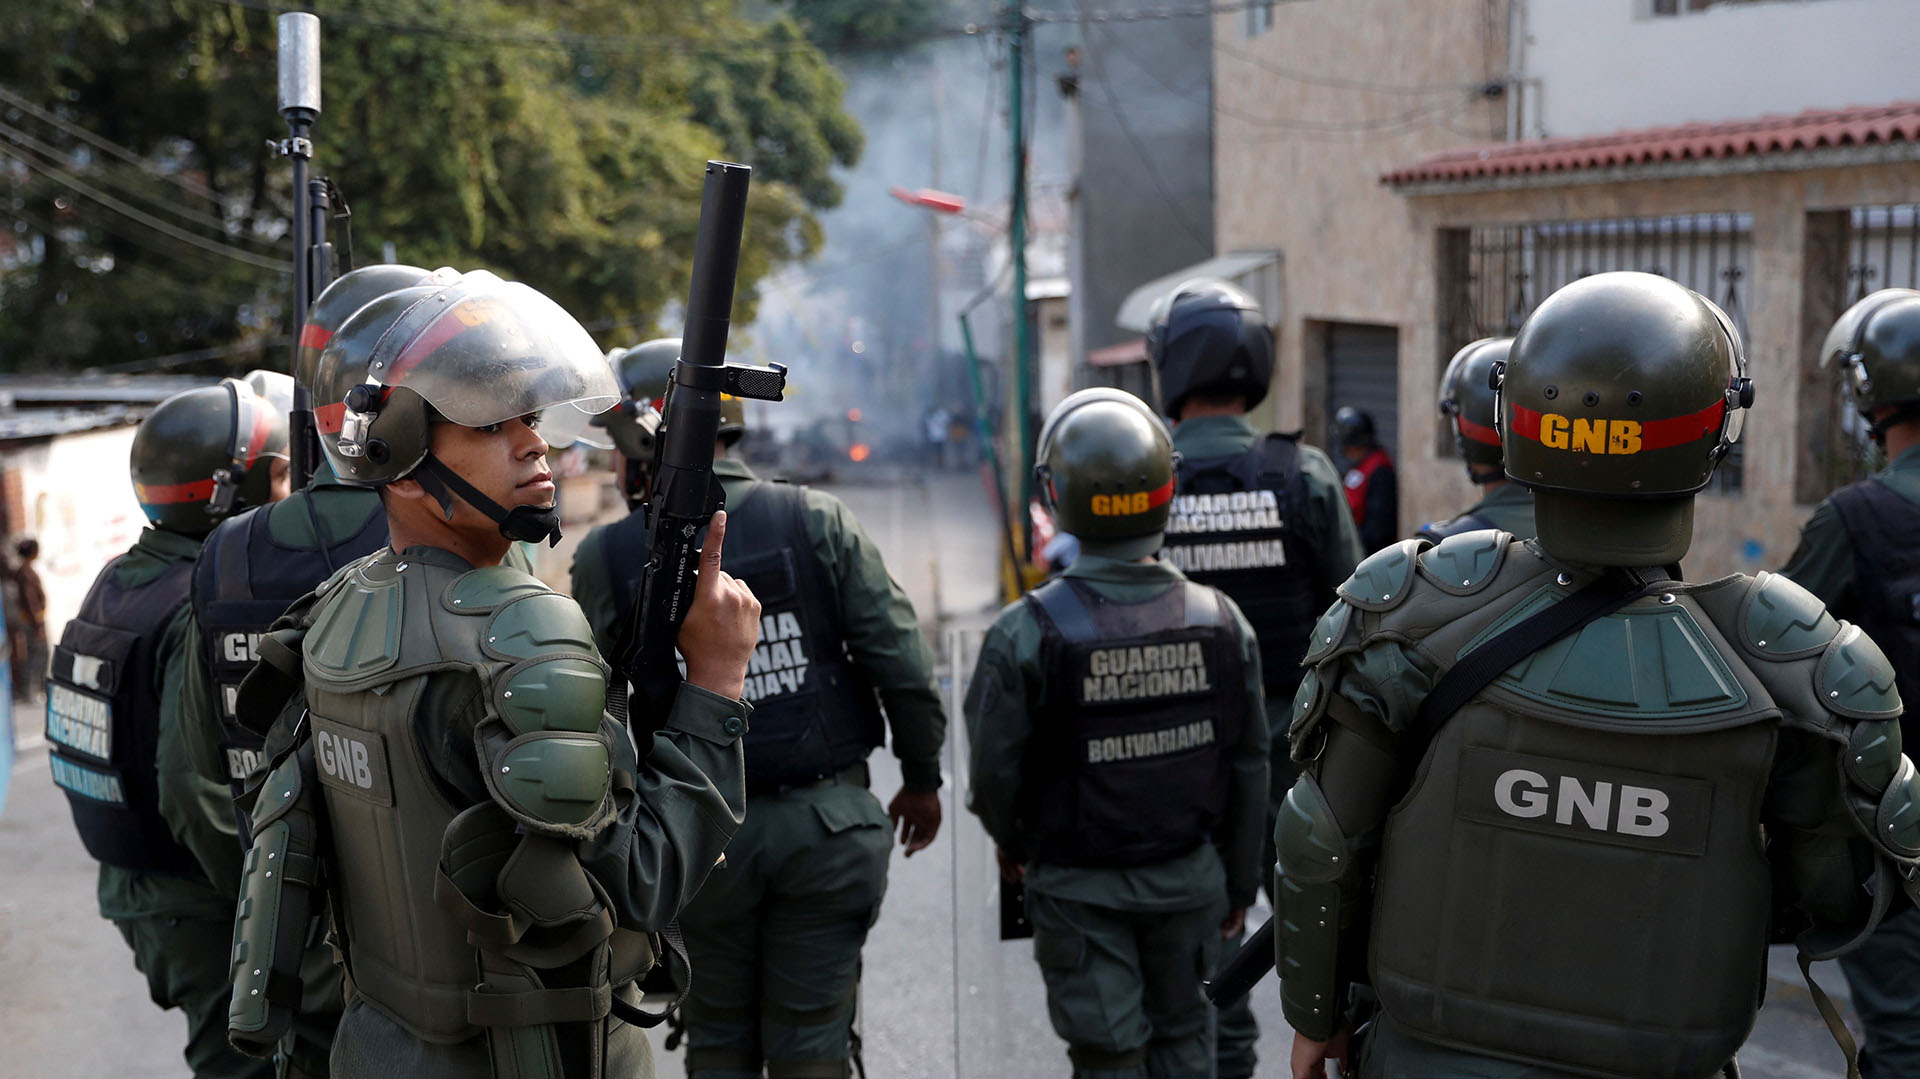 FILE PHOTO: Venezuelan National Guards are seen as demonstrators protest close to one of their outposts in Caracas